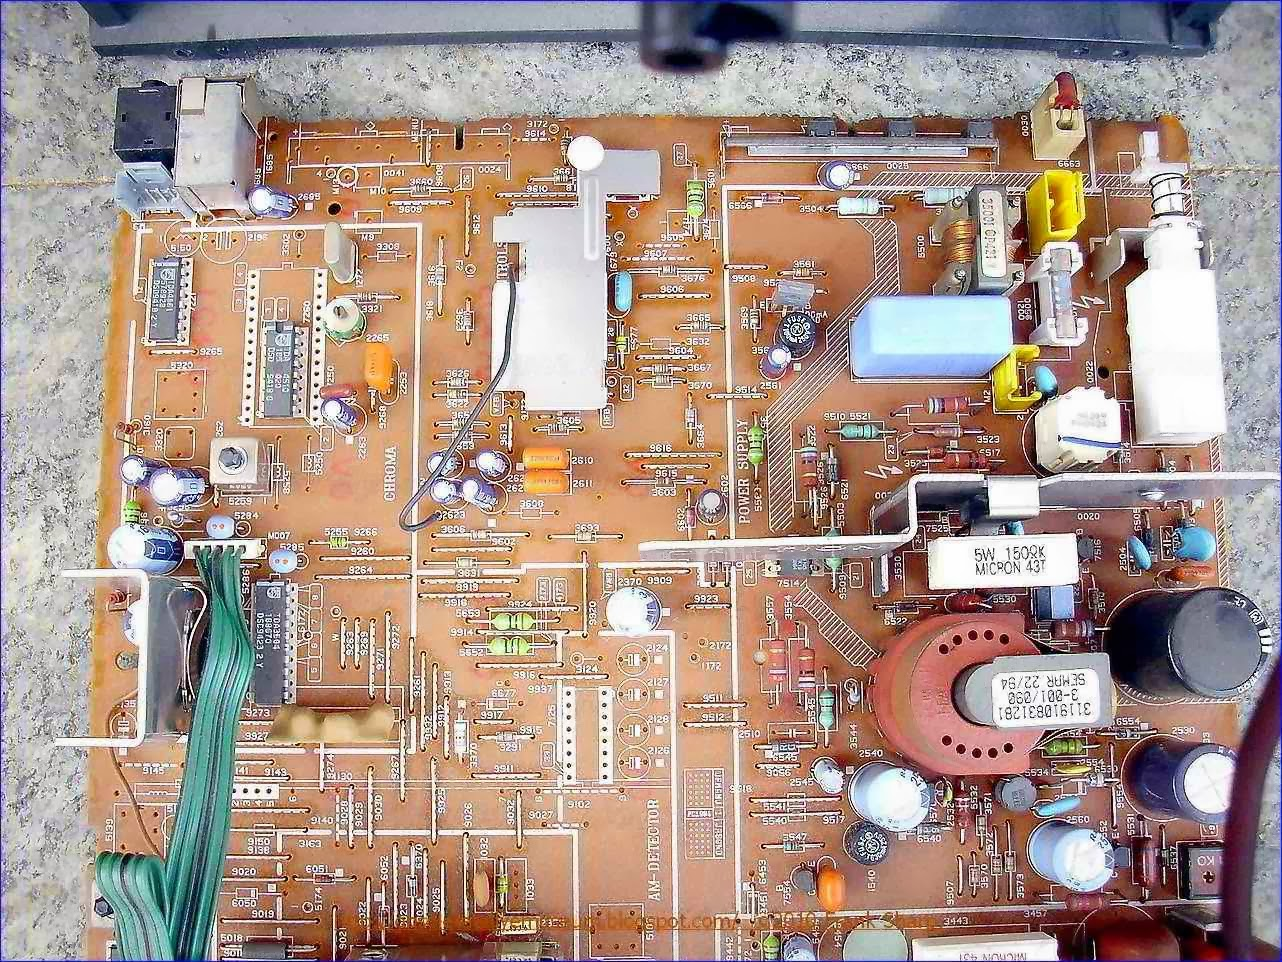 Obsolete Technology Tellye Philips 14pt135a 00 Philetta Chassis Parallel Lc Circuit Http Electronicsclubforengineersblogspotcom The Is Protected From Overvoltage This Ensured By A Thyristor Which Formed Pnp Transistor Tr6 And An Npn Tr7 Anode Of